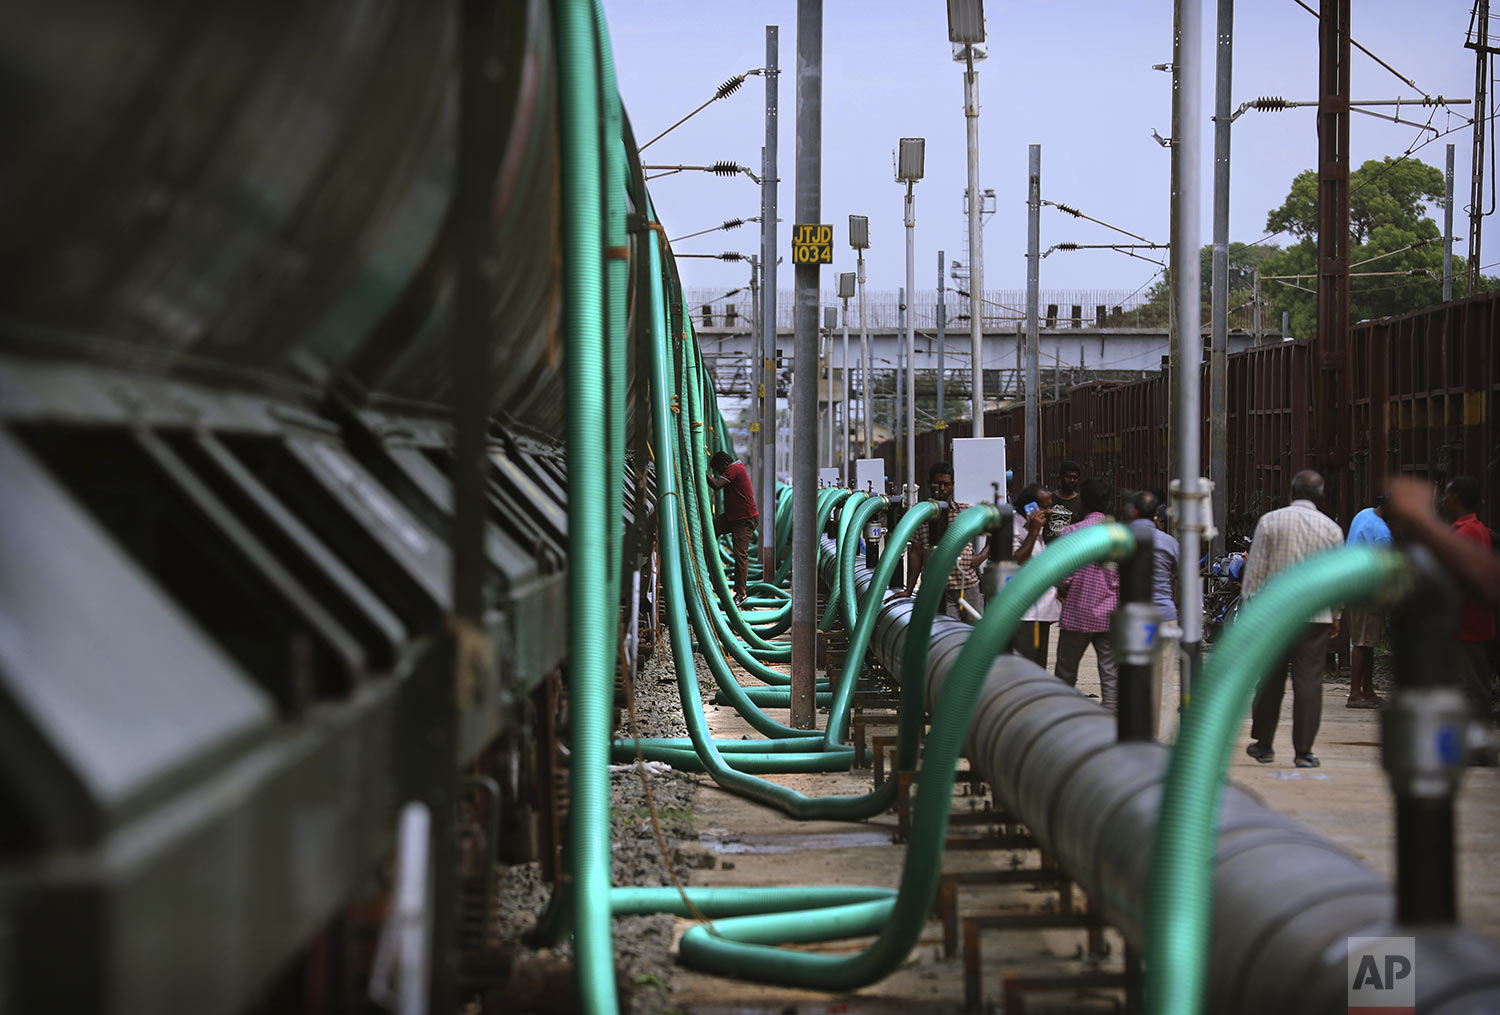 Hundreds of hose-pipes are used to fill wagons of a train with drinking water piped through from the Mettur dam on the Cauvery River at Jolarpet railway station, 216 kilometers (135 miles) from Chennai in Southern Indian state of Tamil Nadu, Wednesday, July 17, 2019. (AP Photo/Manish Swarup)